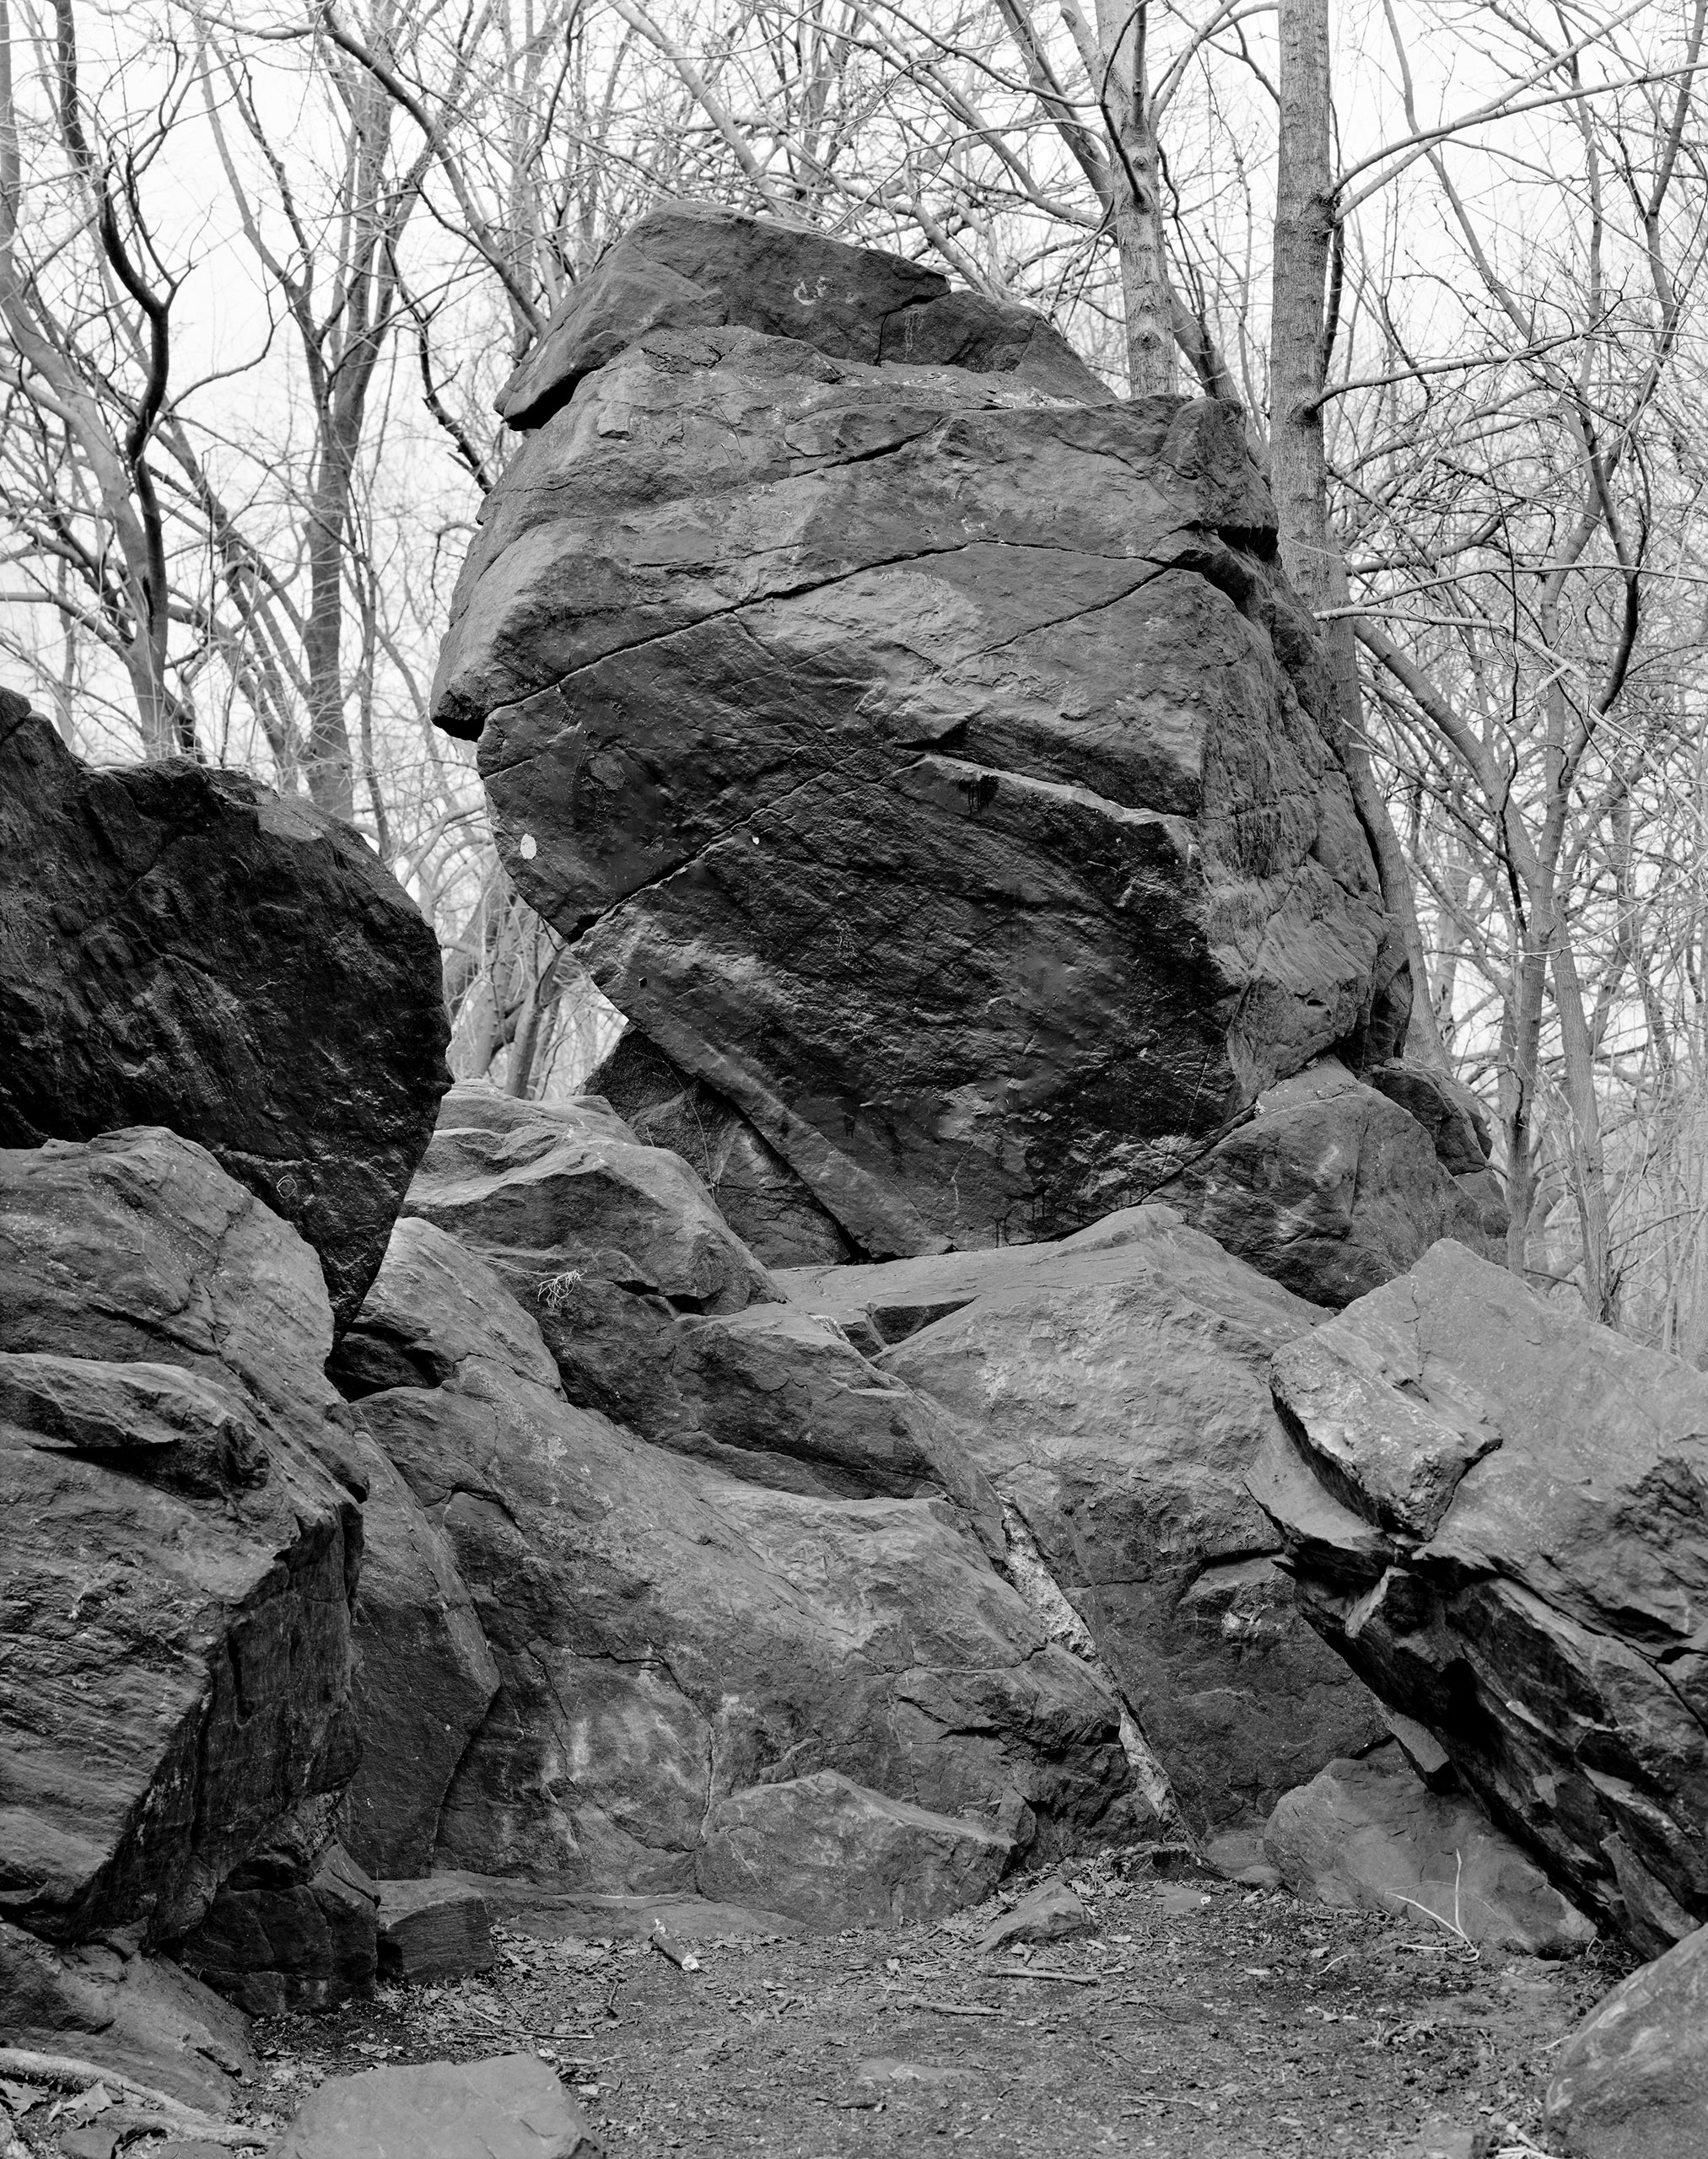 Rocks and Clouds, Yancey Richardson Gallery, N.Y., Sept. 8 - Oct. 22                                                              (Caption: Indian Prayer Rock, Pelham Bay Park, Bronx, 2014)